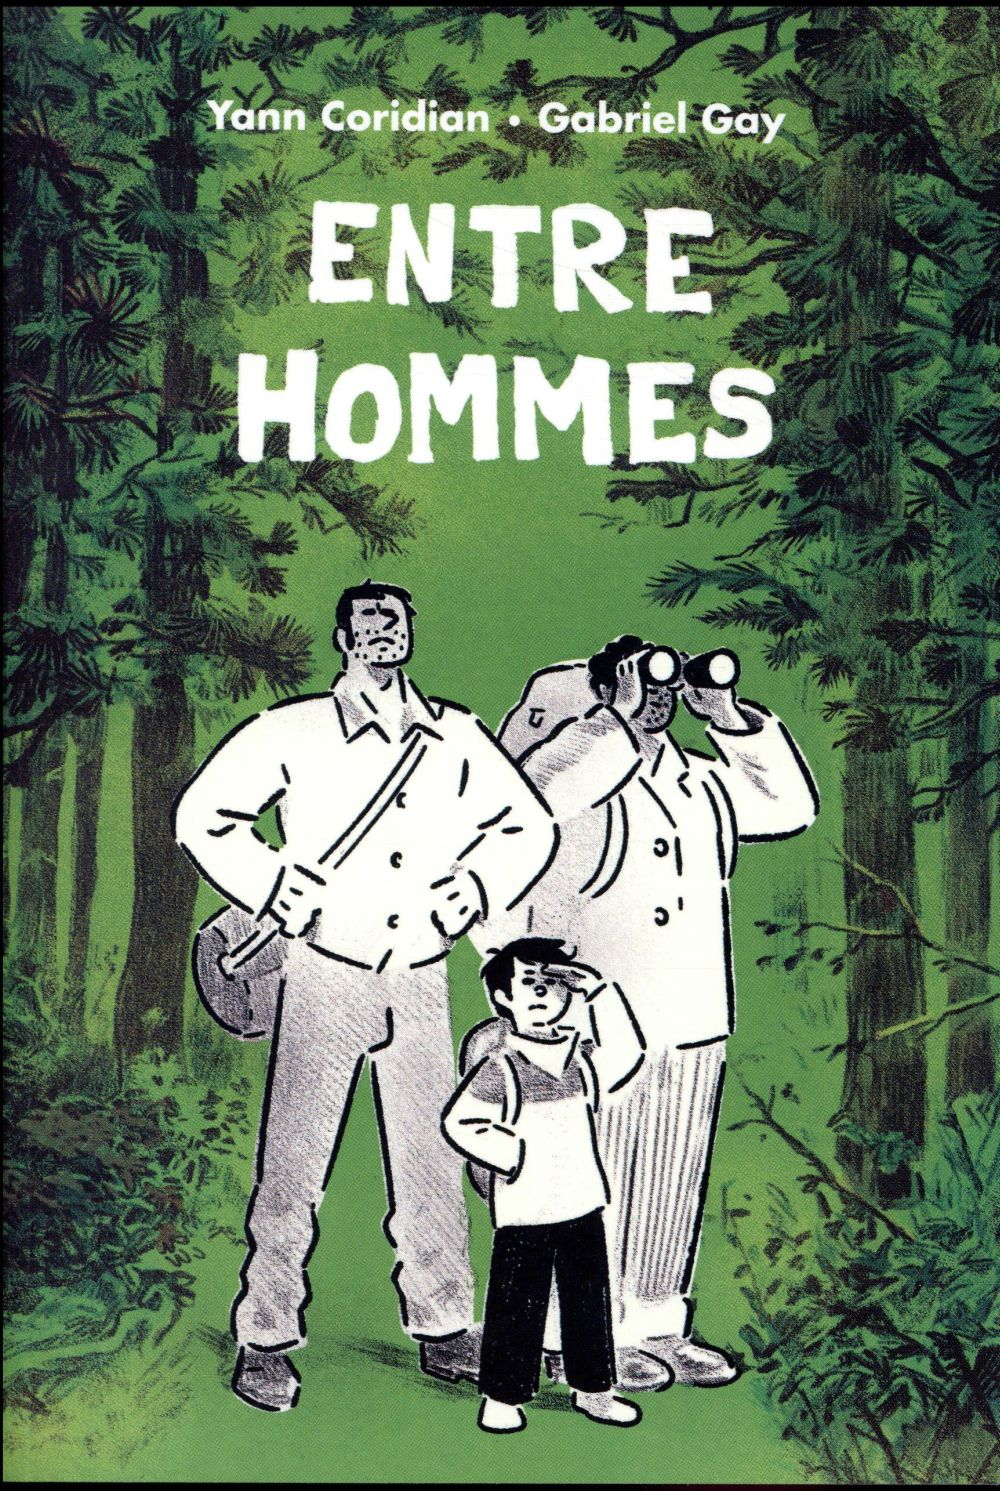 ENTRE HOMMES (GRAND FORMAT) CORIDIAN YANN / GAY EDL